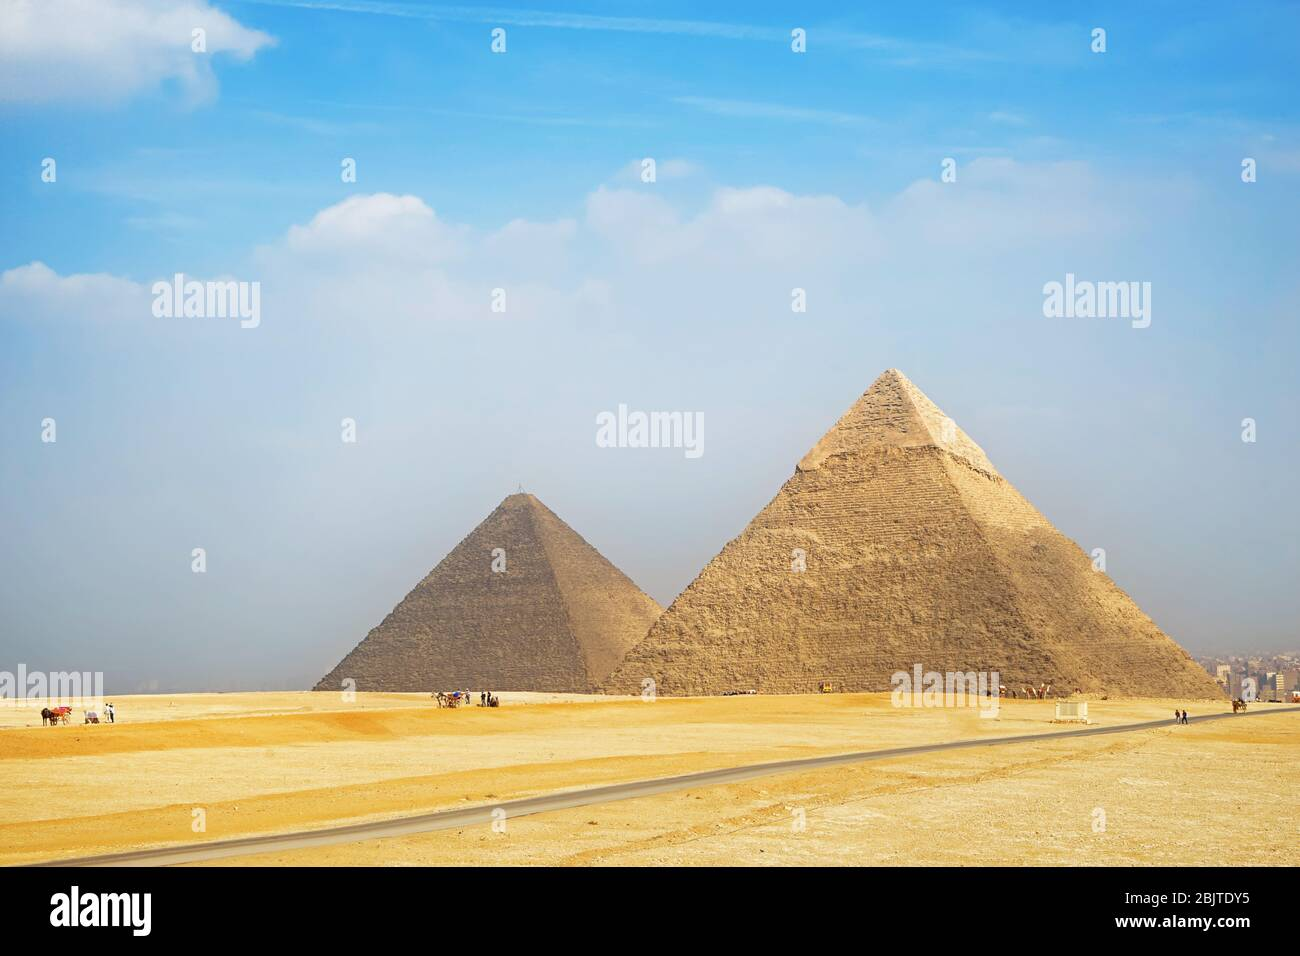 Egypt Tourist Attractions High Resolution Stock Photography And Images Alamy